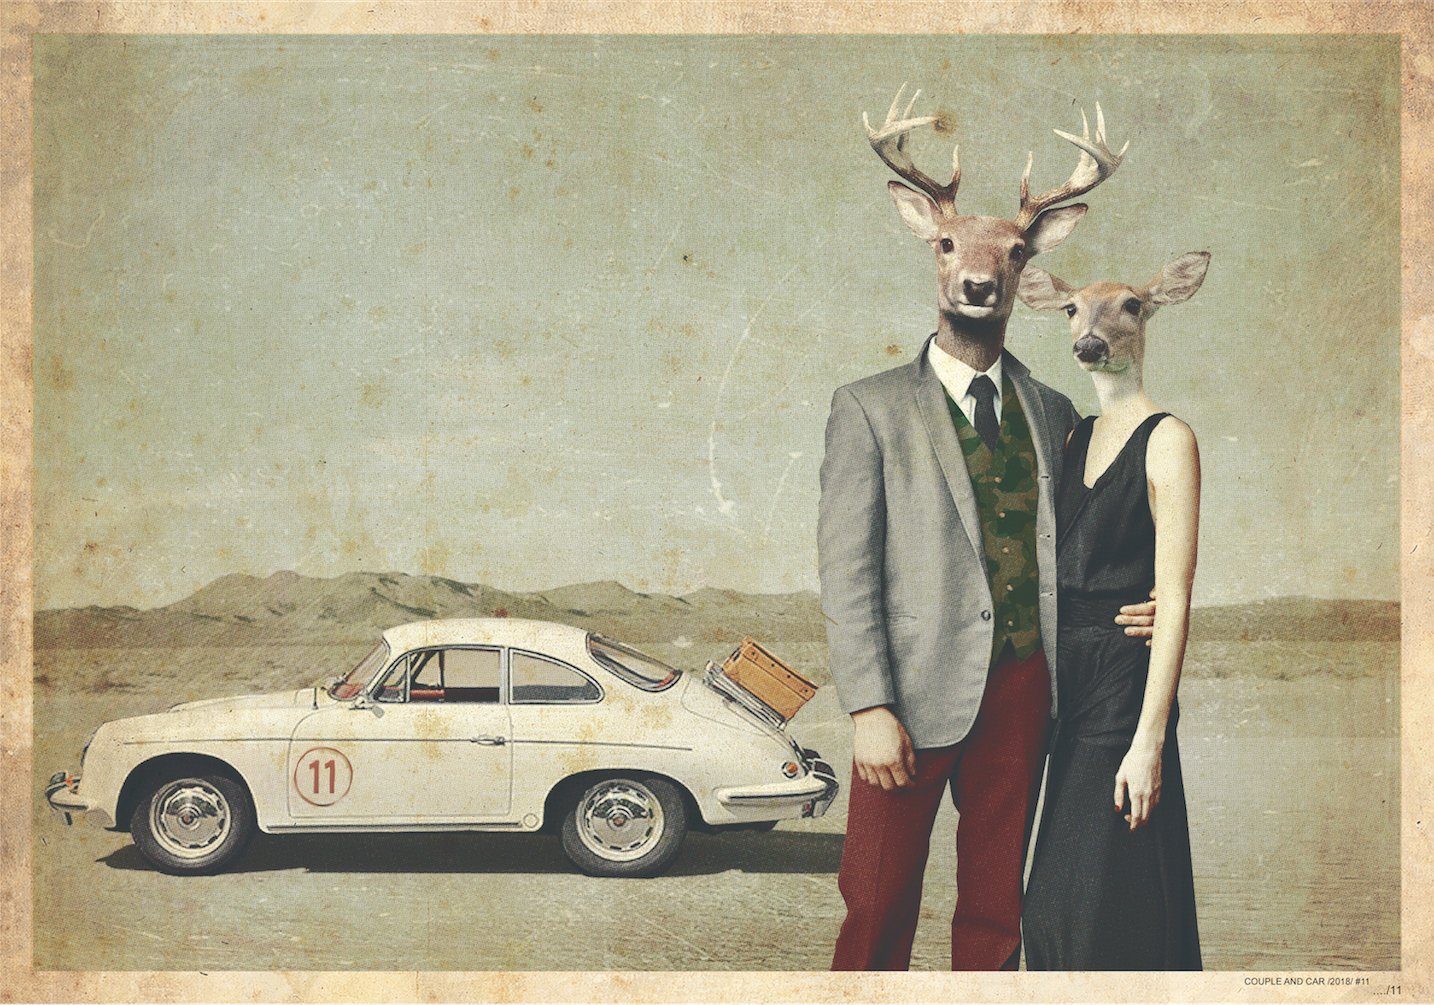 COUPLE AND CAR